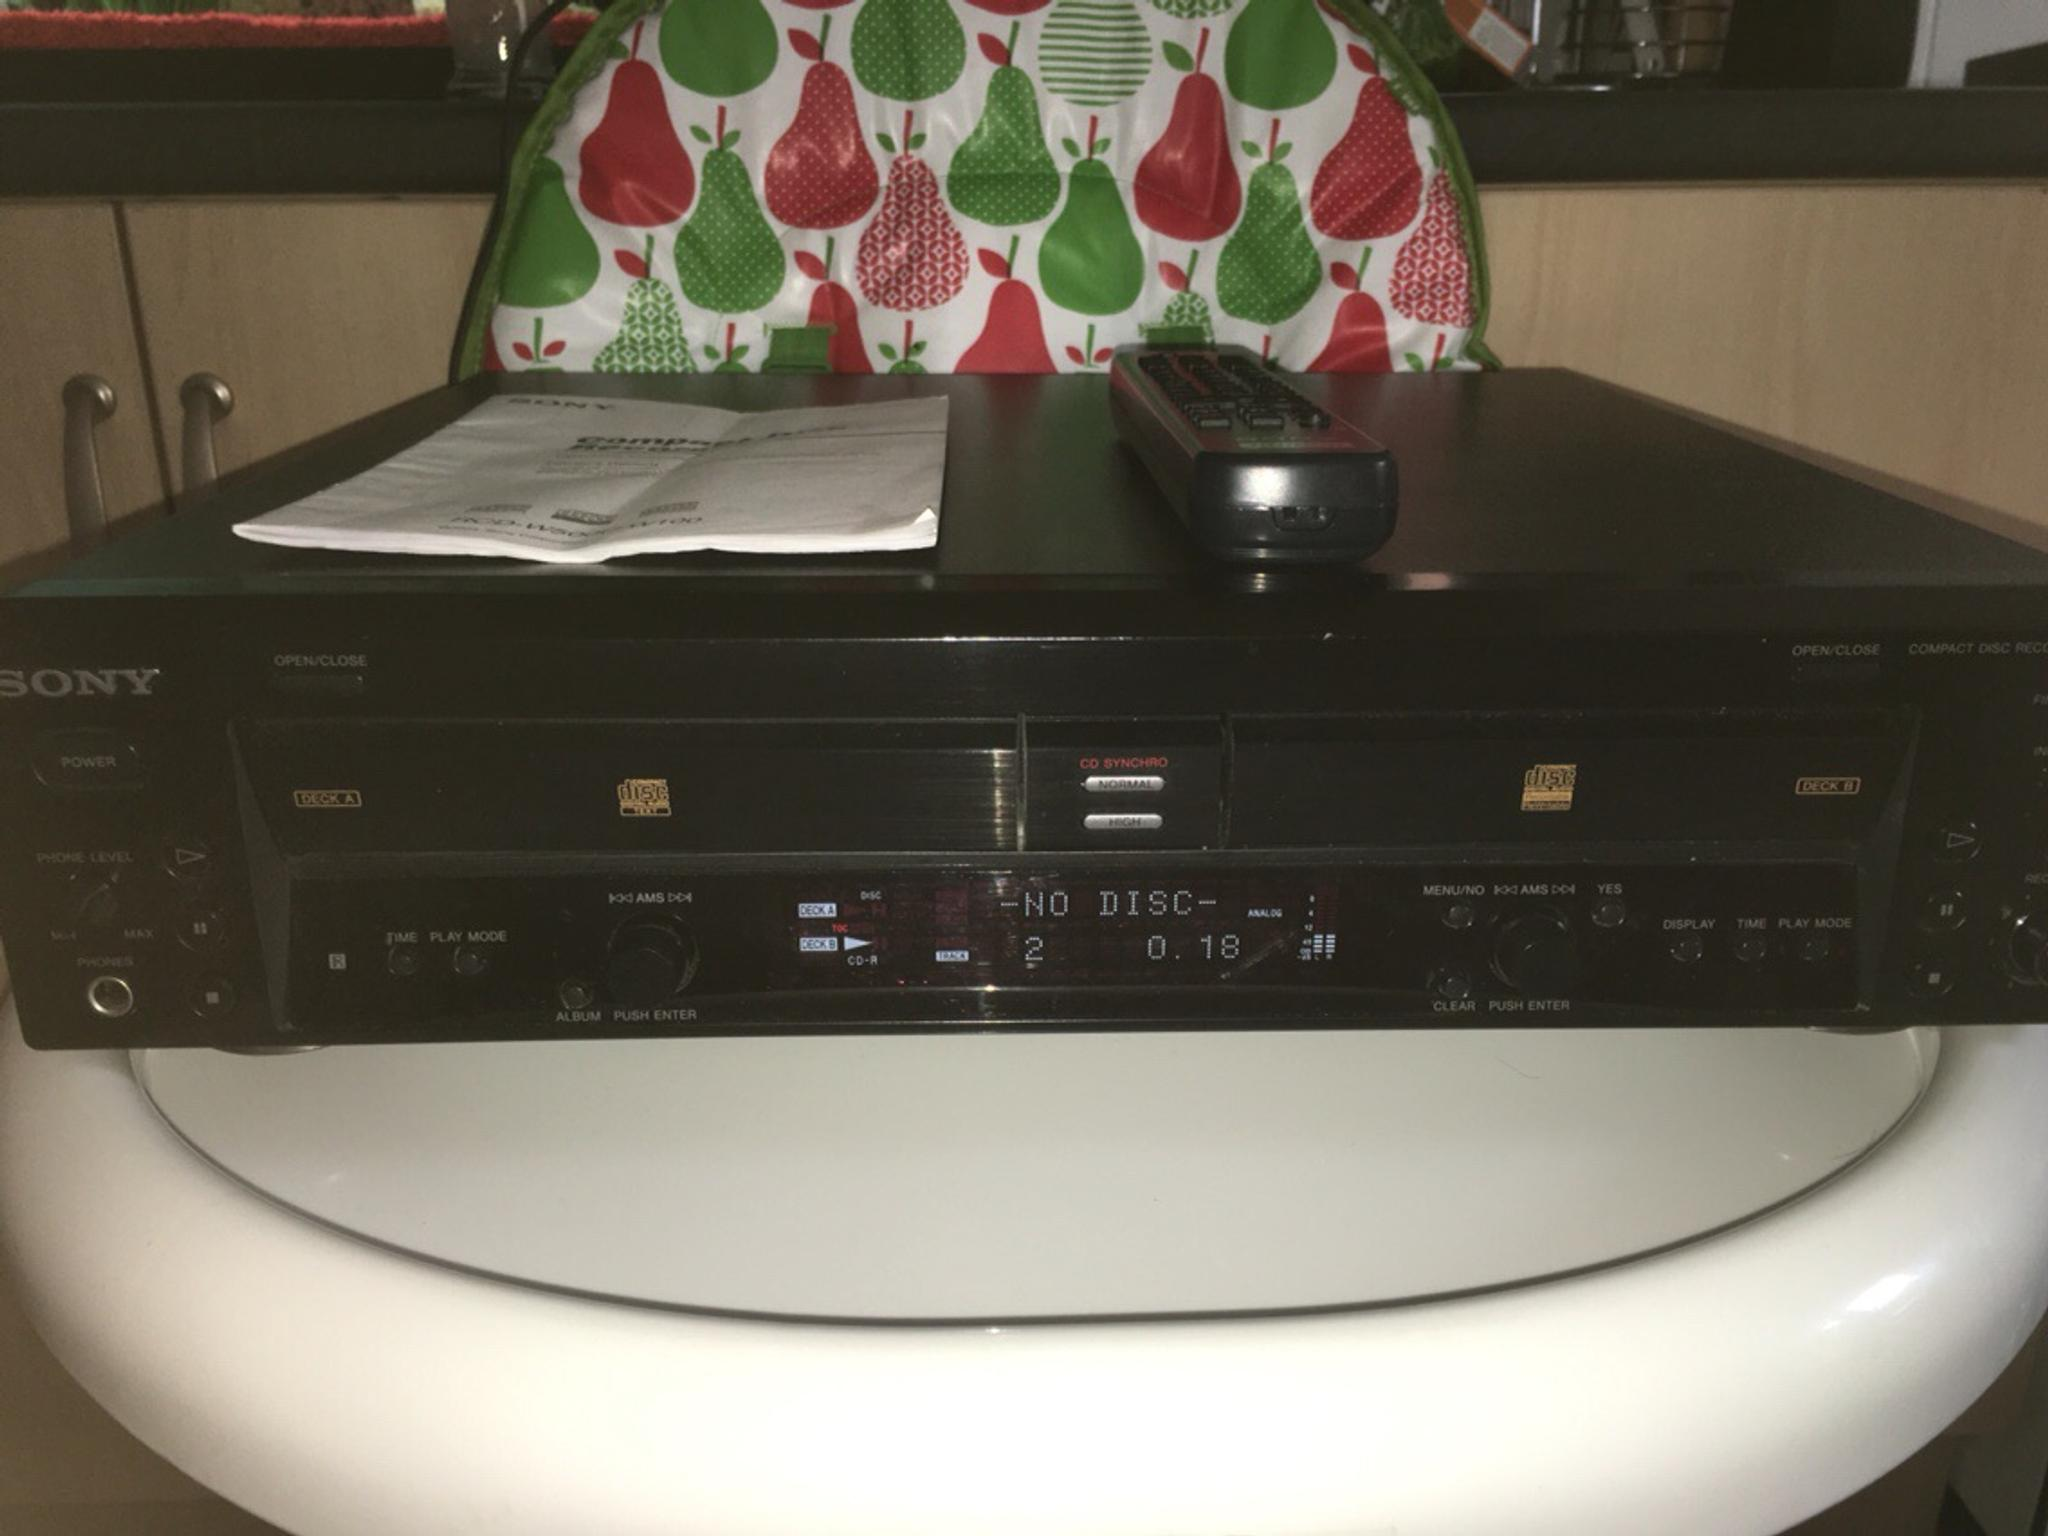 SONY RCD-W500C RCDW100 5-Disc Changer CD Recorder Player USER MANUAL Guideuide